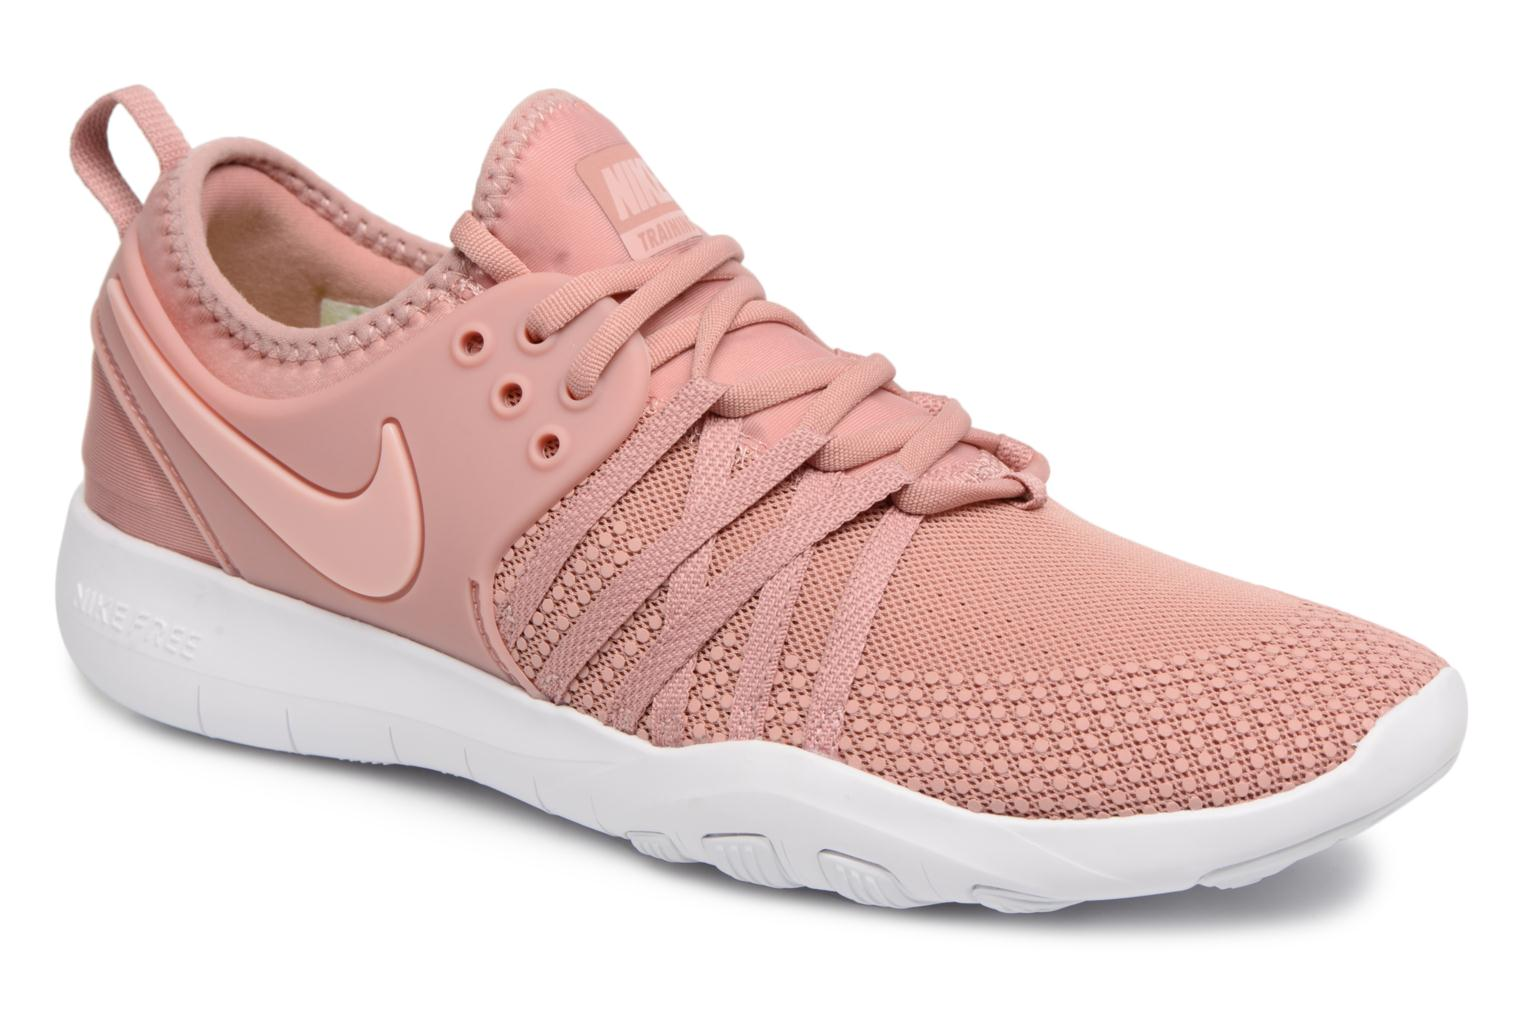 Marques Chaussure femme Nike femme Wmns Nike Free Tr Flyknit 2 Rust Pink/White